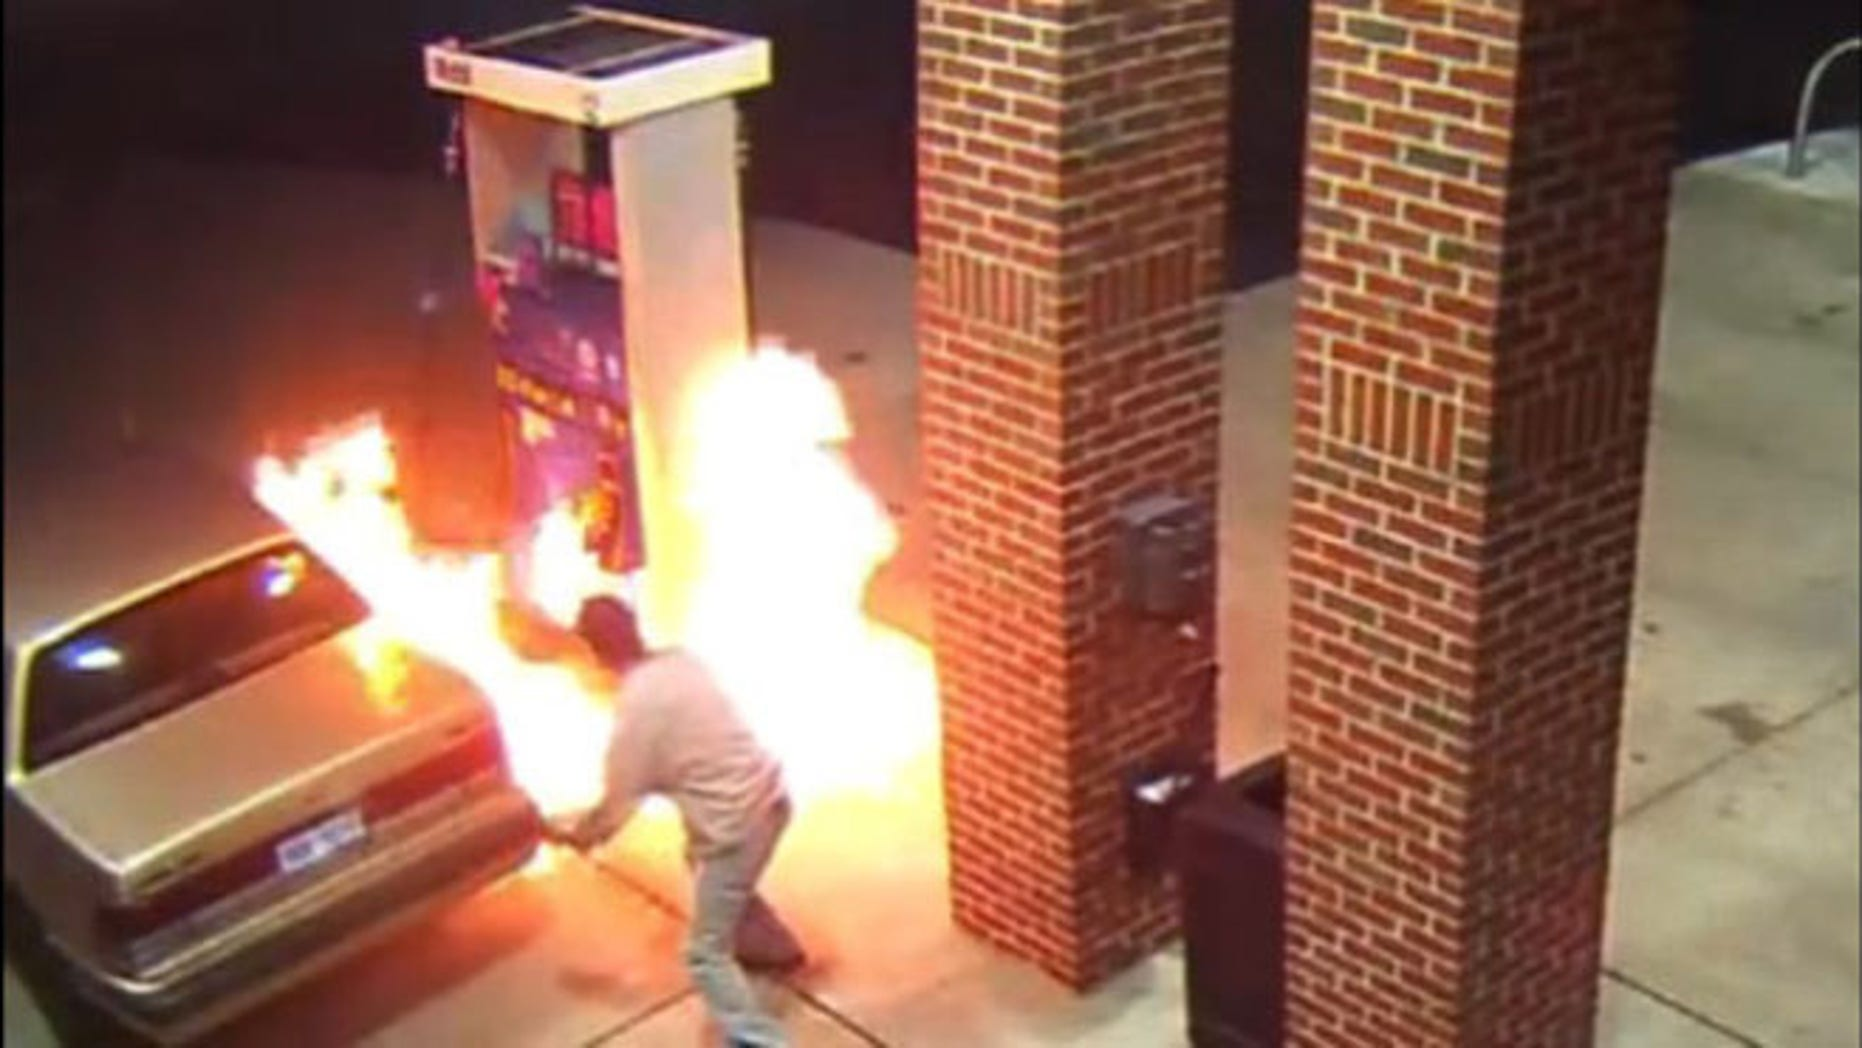 Image from surveillance video shows motorist starting gas station blaze trying to kill spider with lighter.